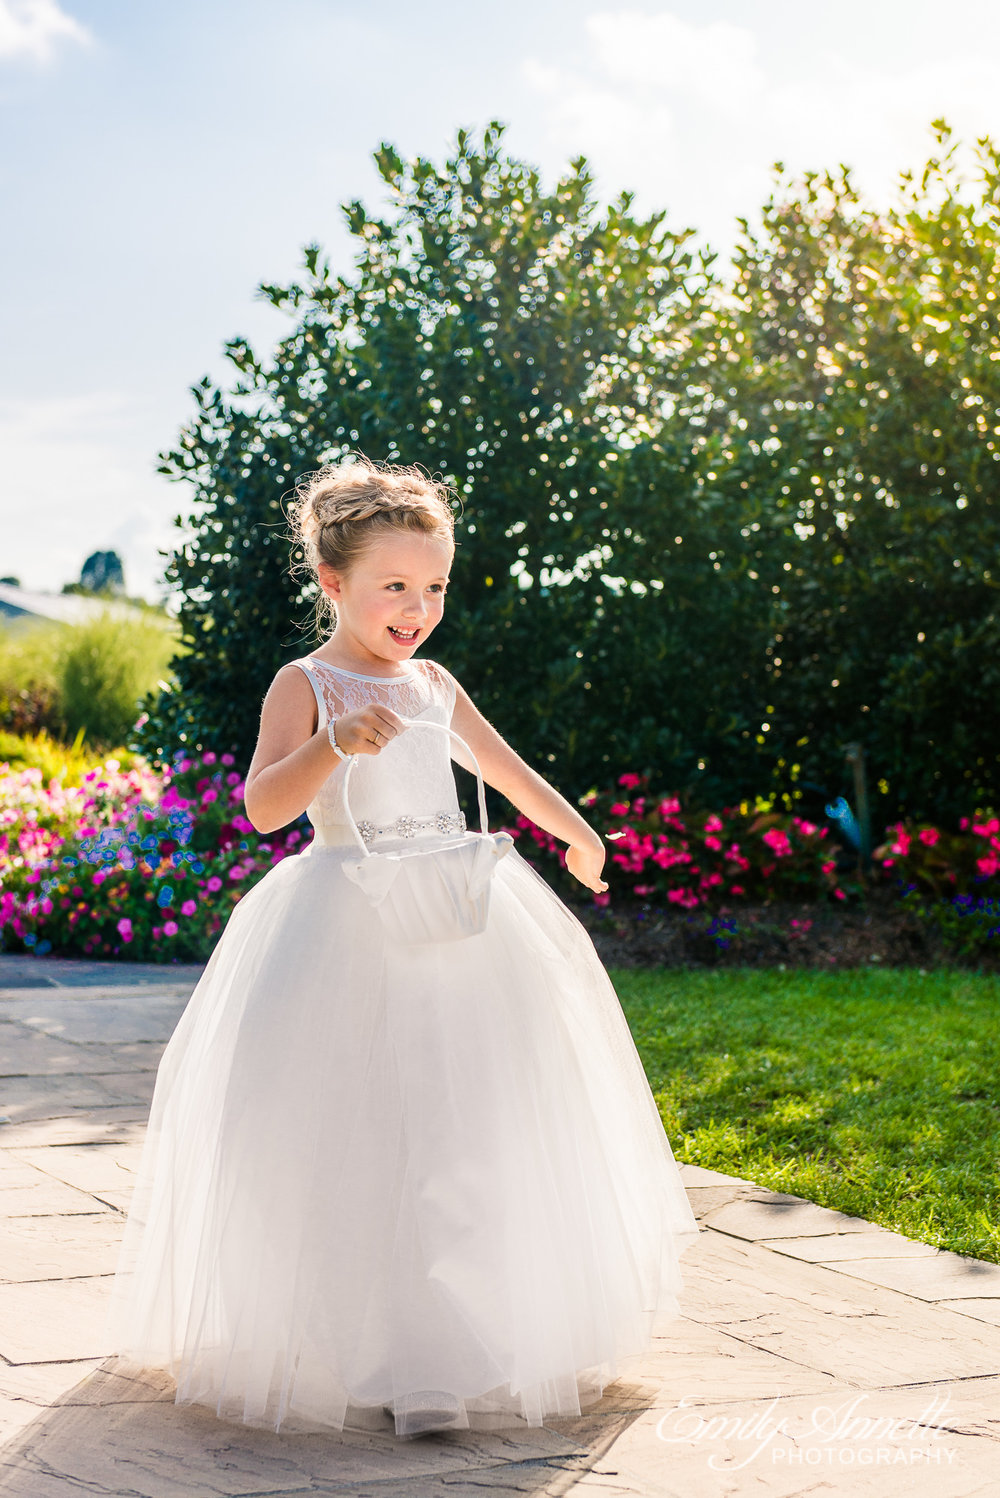 A flower girl in a big white dress drops petals during a wedding at Herrington on the Bay in North Beach, Maryland